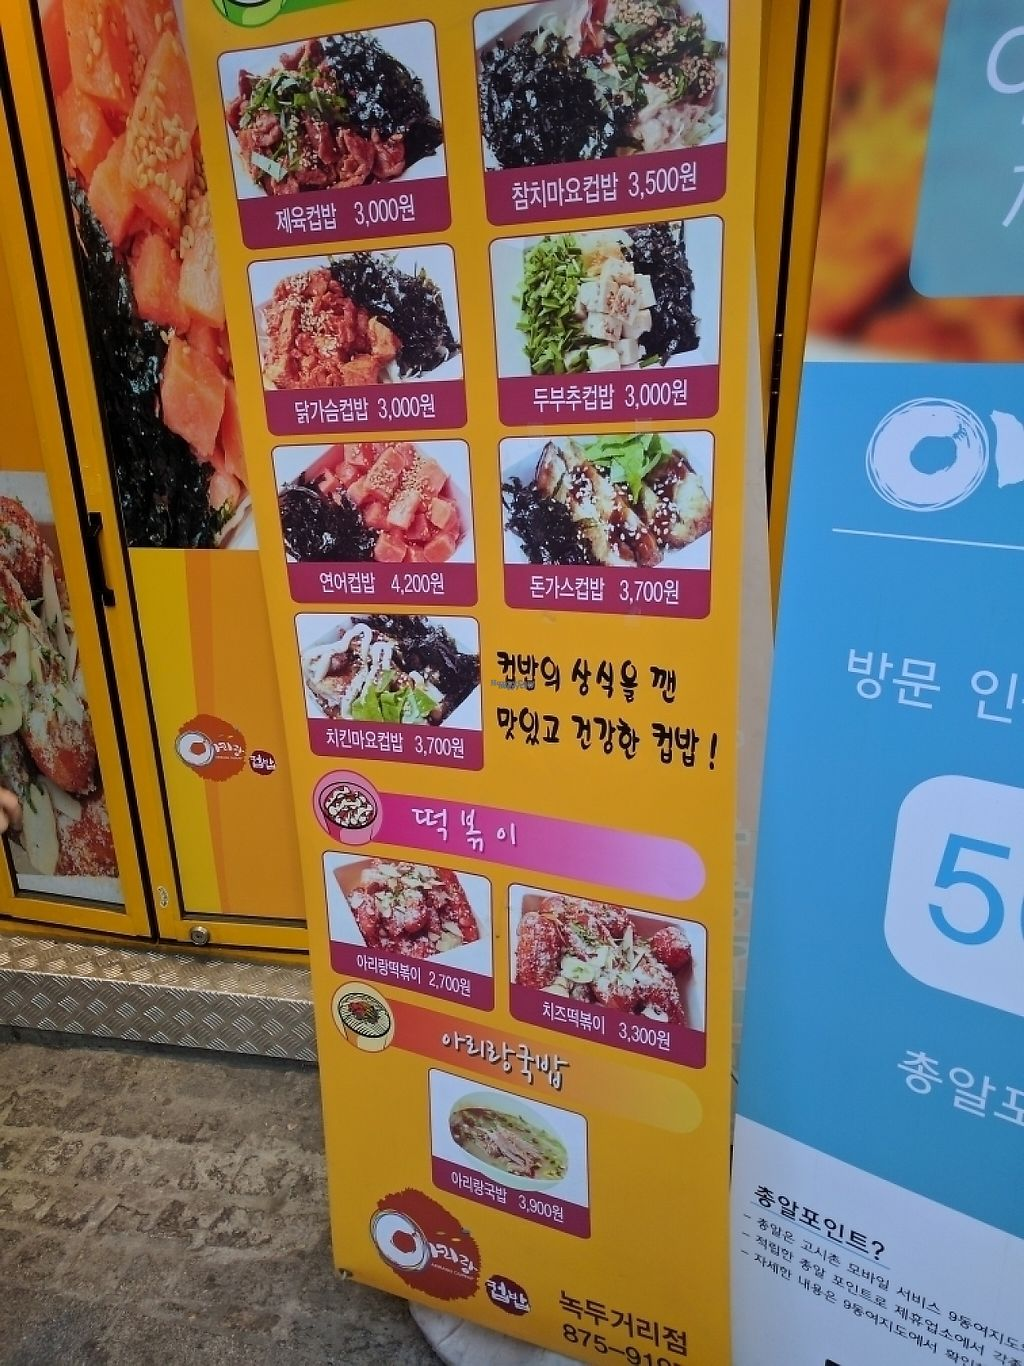 """Photo of Arirang Cup-Bop - 아리랑 컵밥  by <a href=""""/members/profile/PhillipPark"""">PhillipPark</a> <br/>Dubu-chu cup-bob 두부추 컵밥  is the only vegan option <br/> April 3, 2017  - <a href='/contact/abuse/image/89461/244474'>Report</a>"""